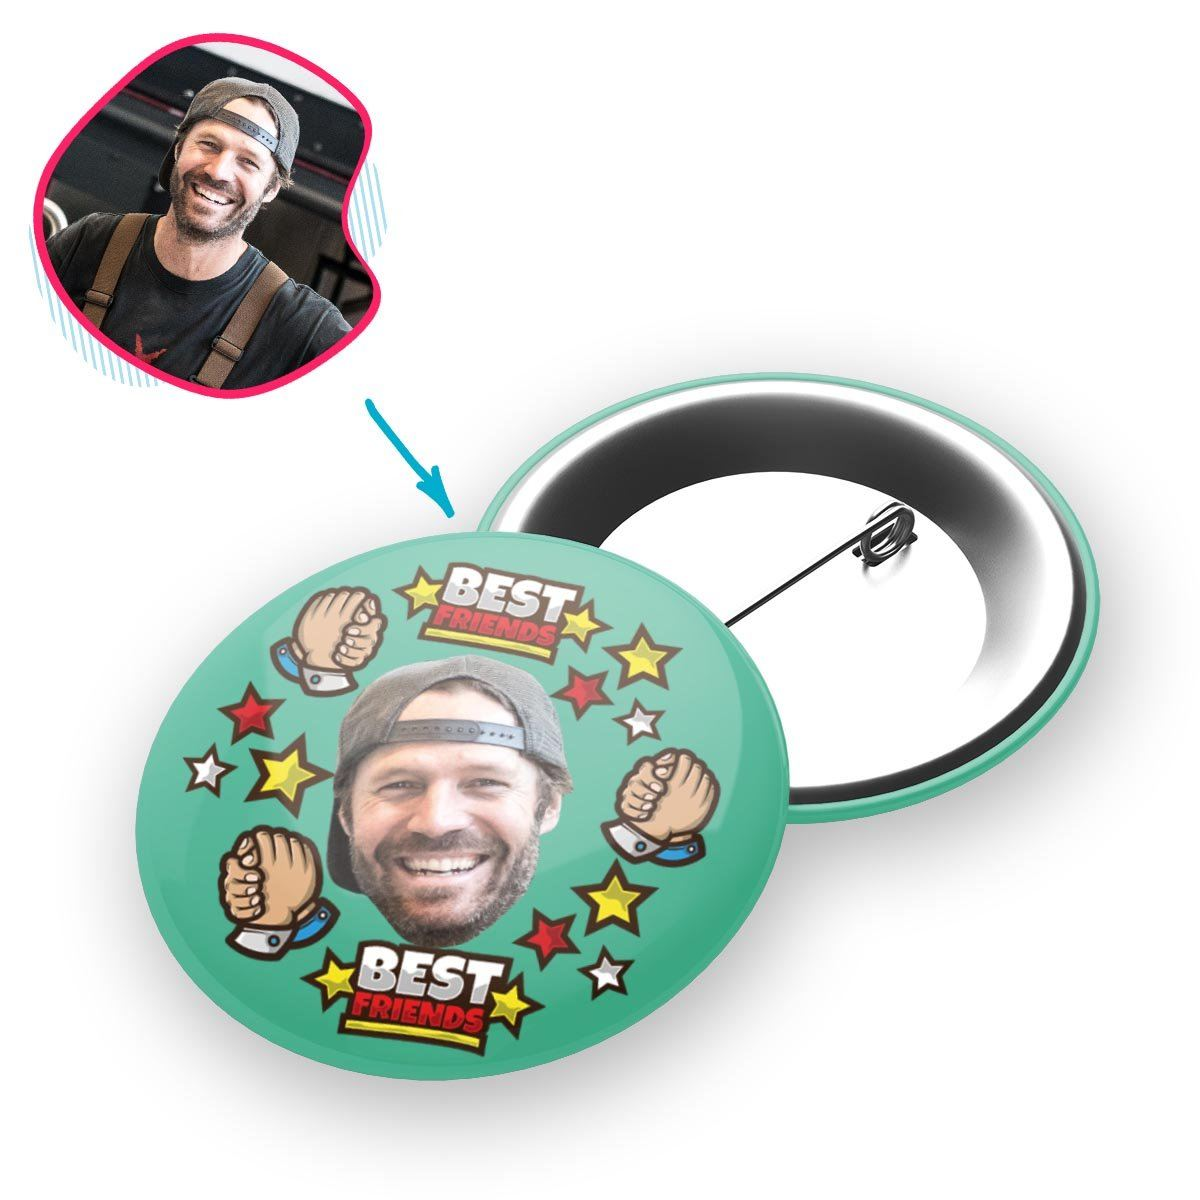 mint Best Friends pin personalized with photo of face printed on it